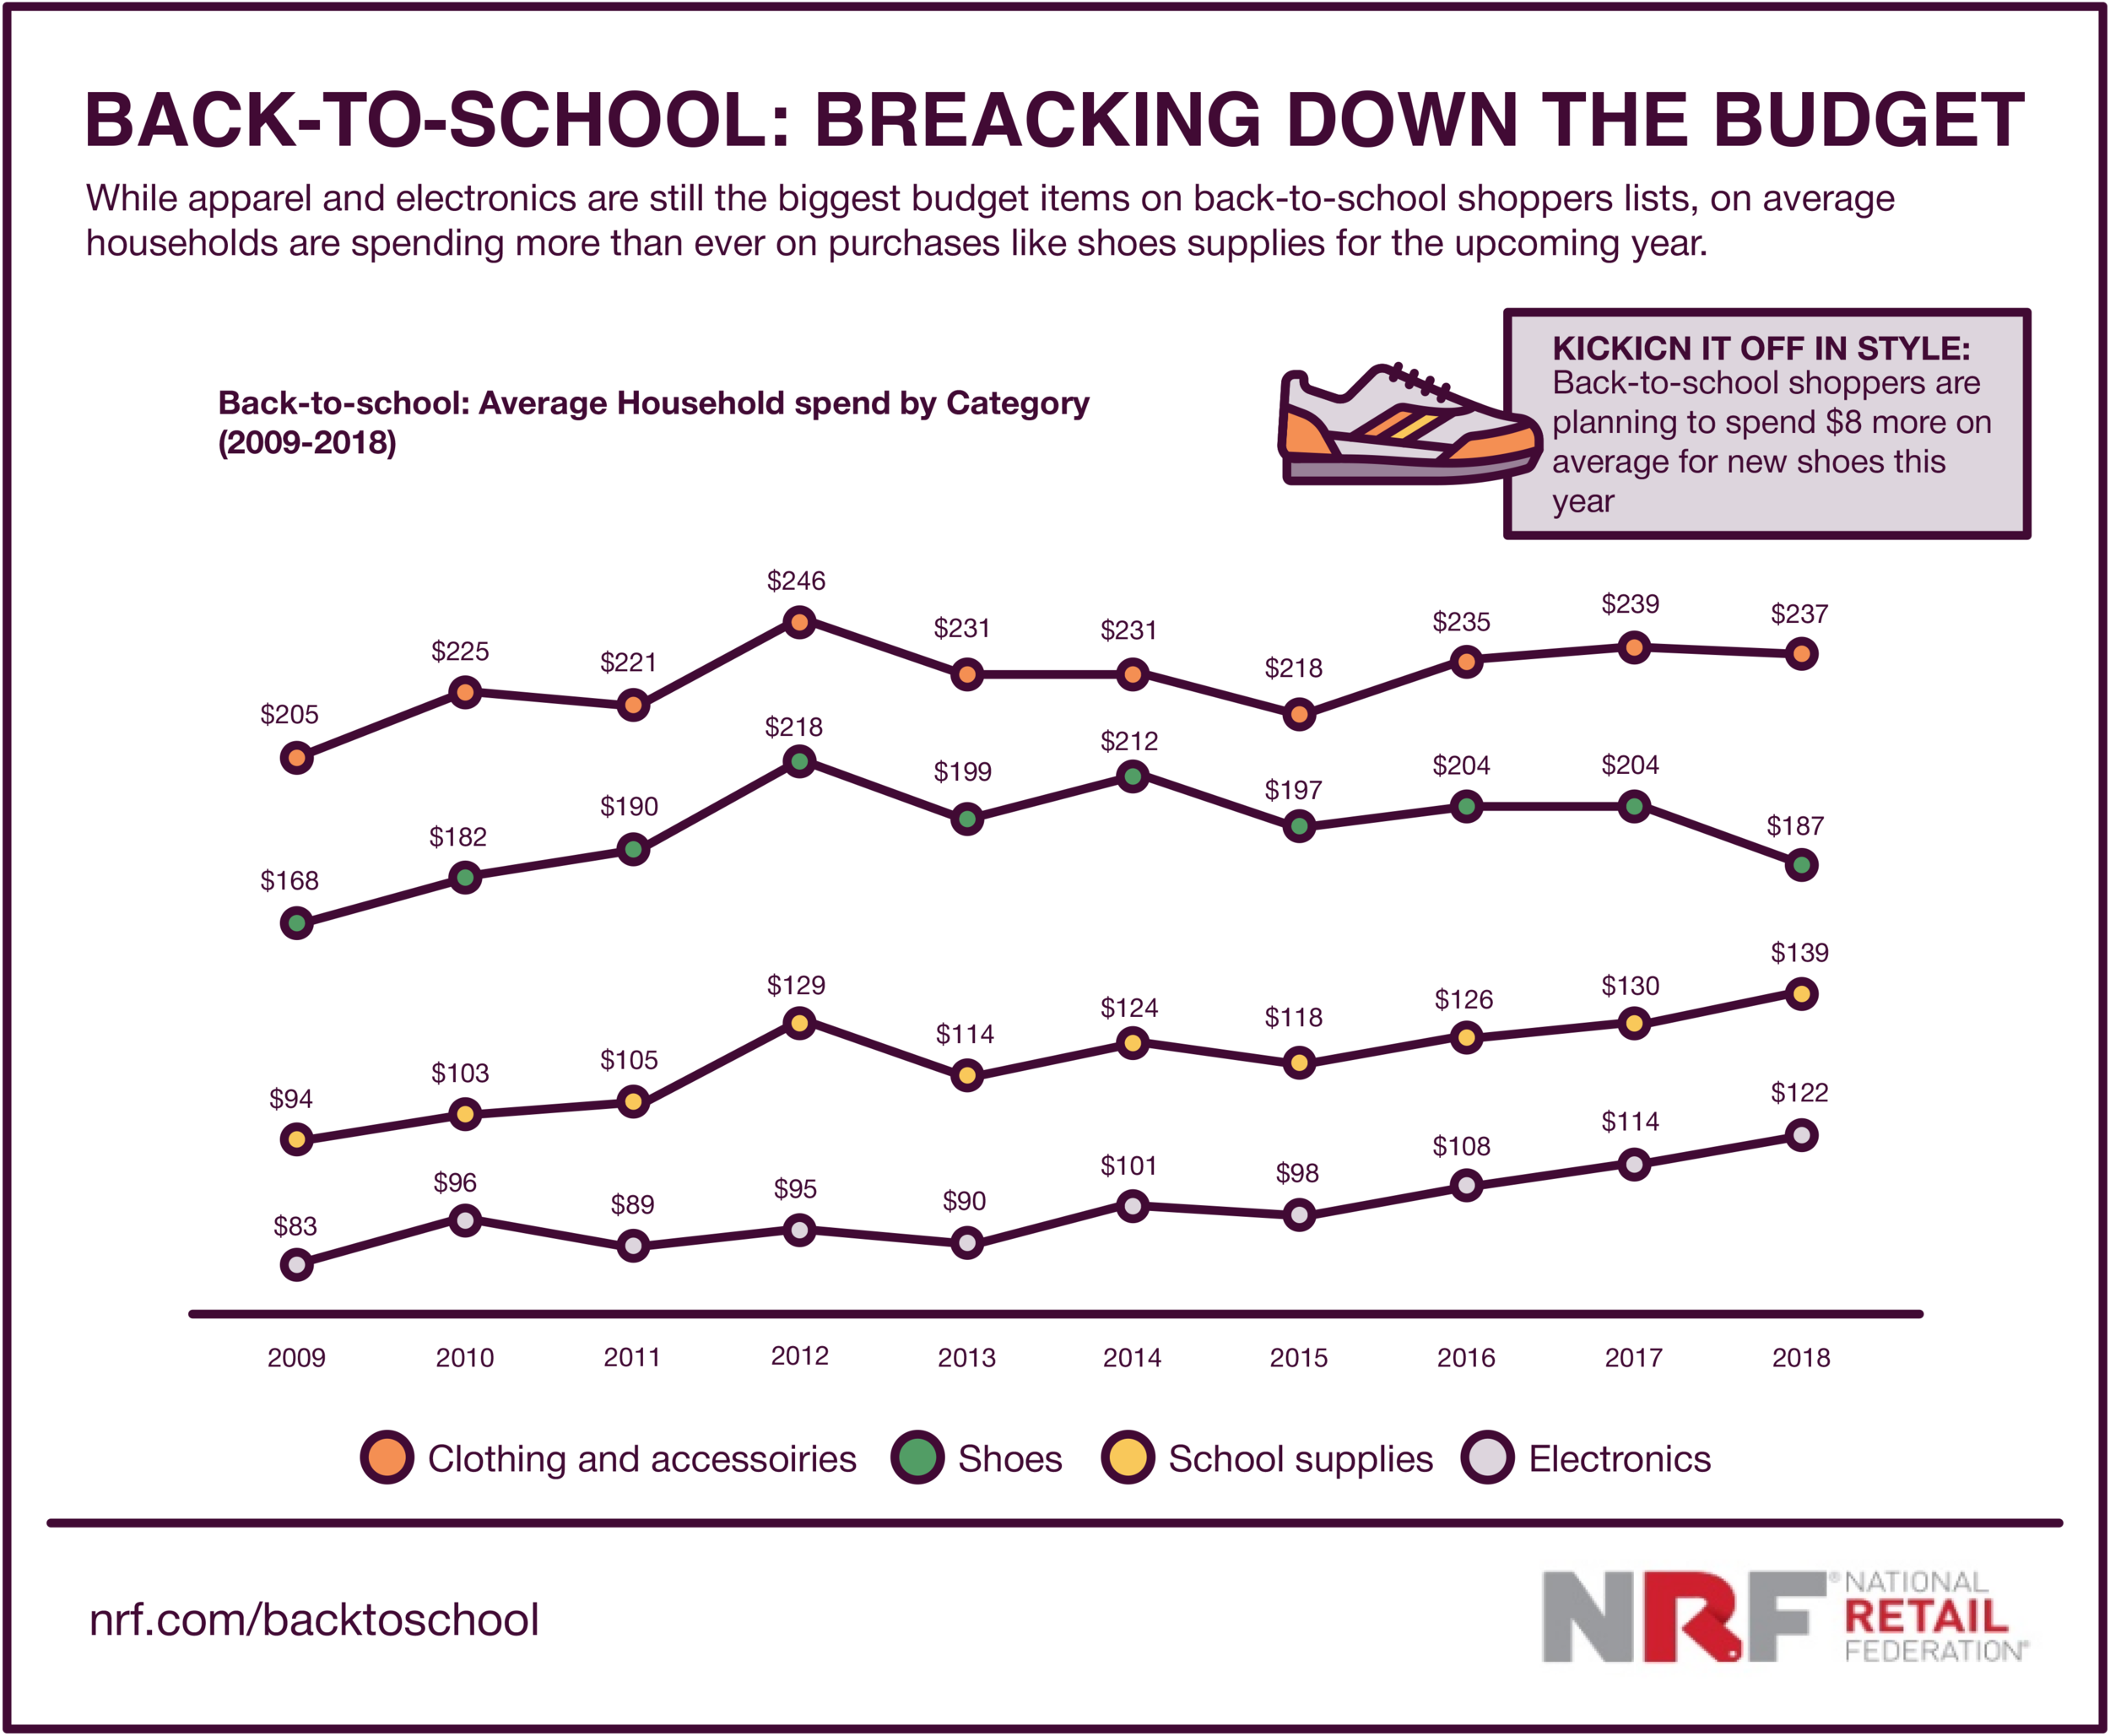 2018 Back-to-School Guide Influencer Marketing Guide_4.png